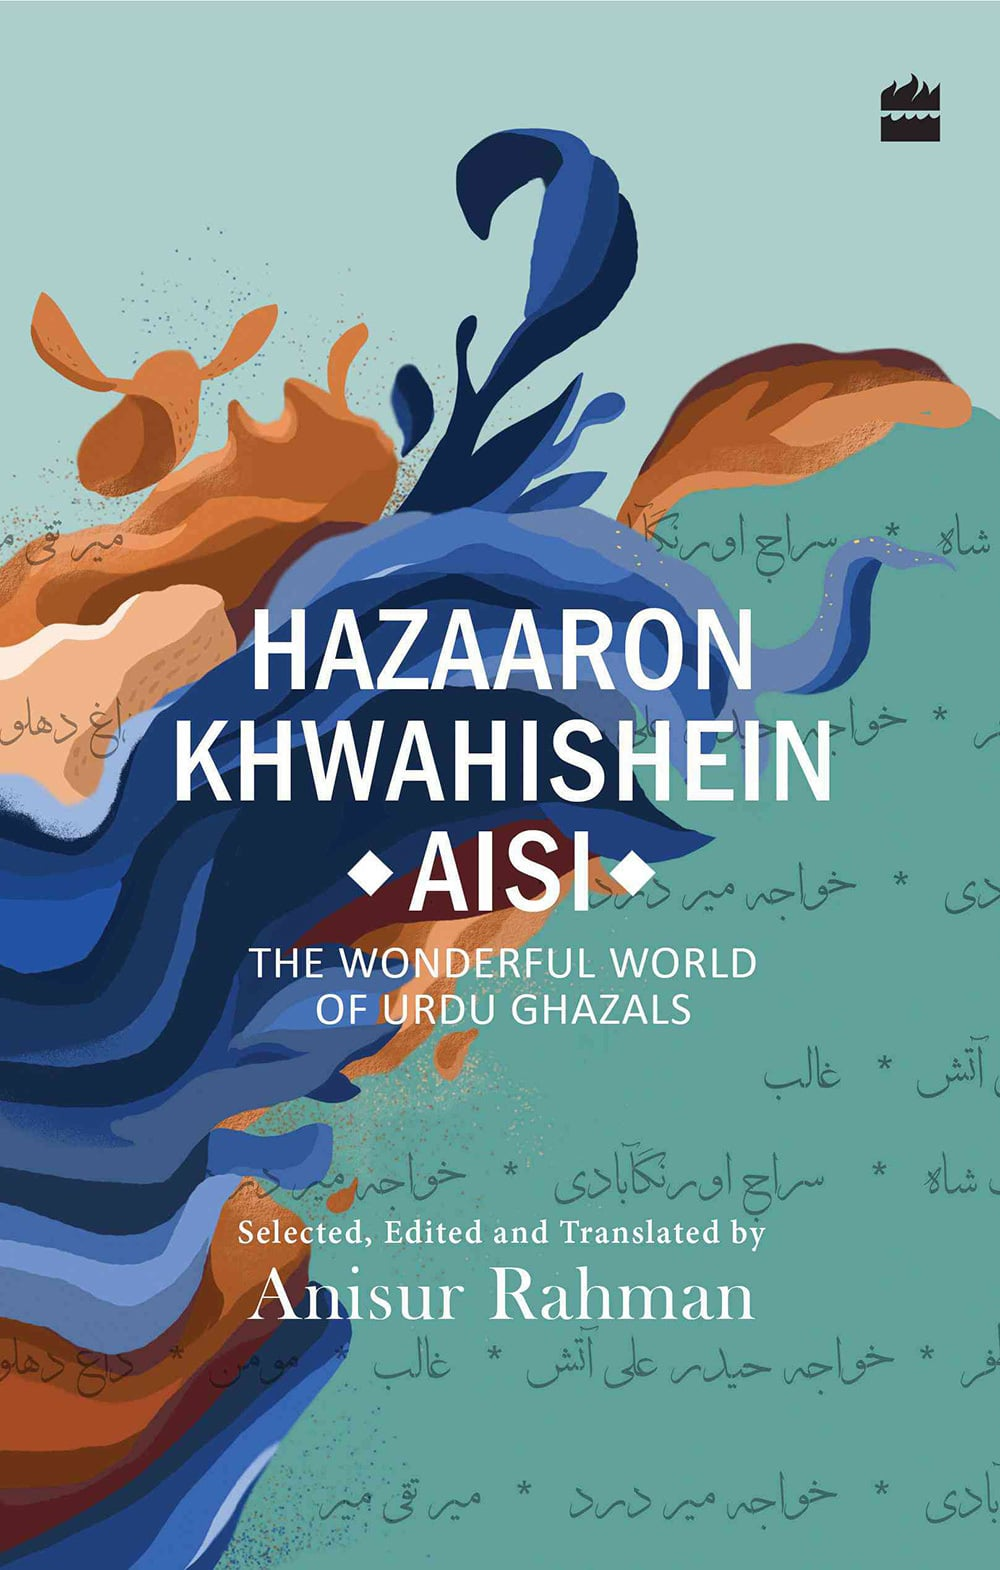 Hazaaron Khwahishein Aisi: The Wonderful World of Urdu Ghazals, selected, edited and translated by Anisur Rahman, published by HarperCollins India.